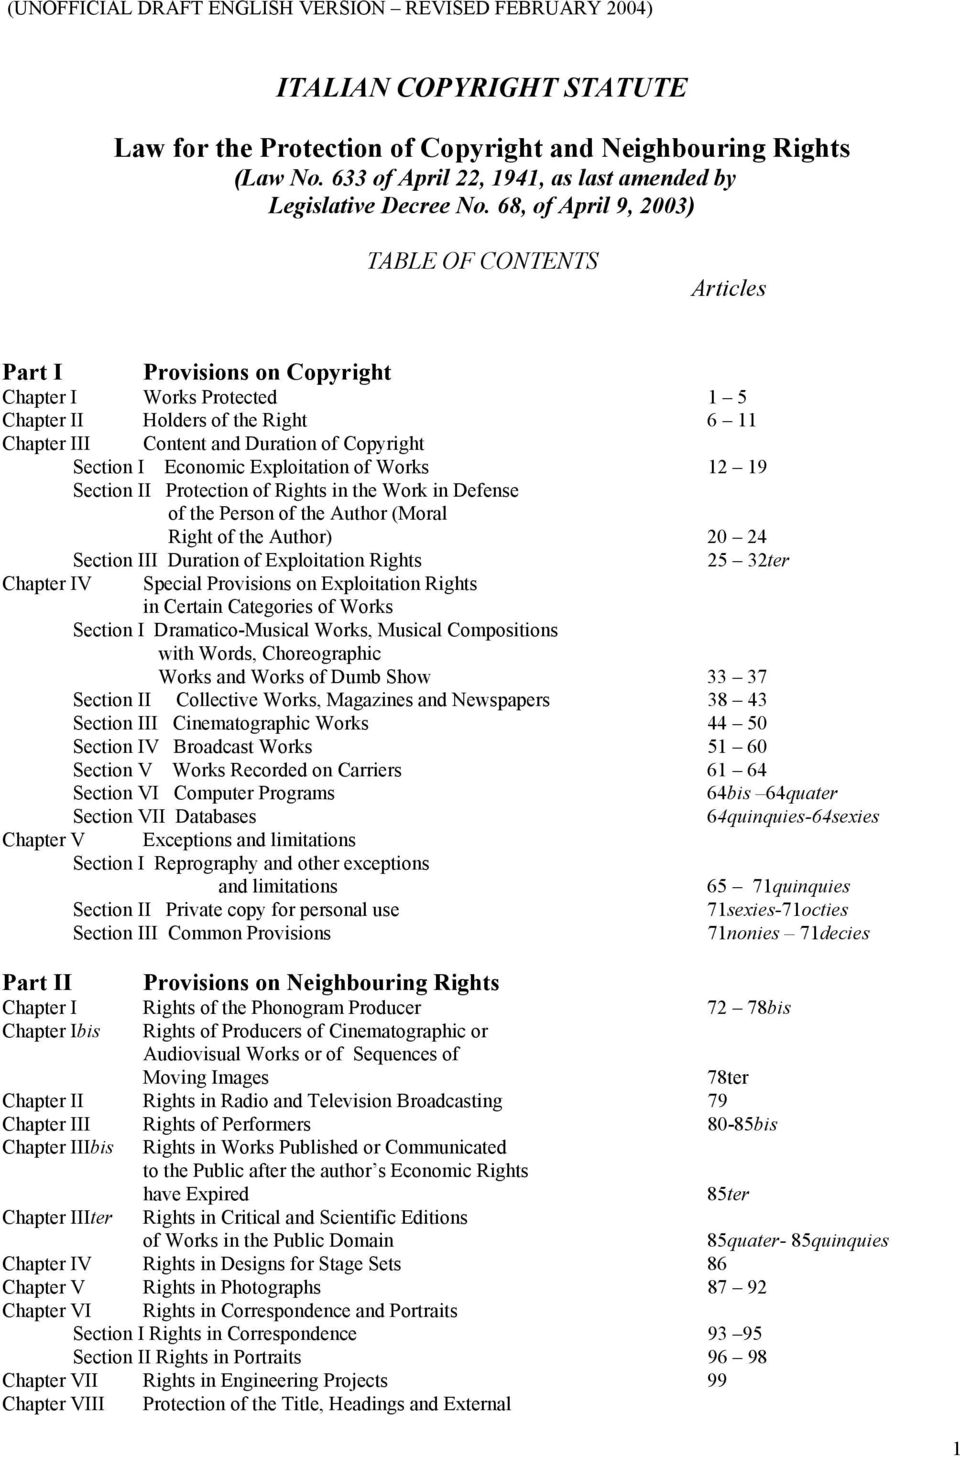 68, of April 9, 2003) TABLE OF CONTENTS Articles Part I Provisions on Copyright Chapter I Works Protected 1 5 Chapter II Holders of the Right 6 11 Chapter III Content and Duration of Copyright